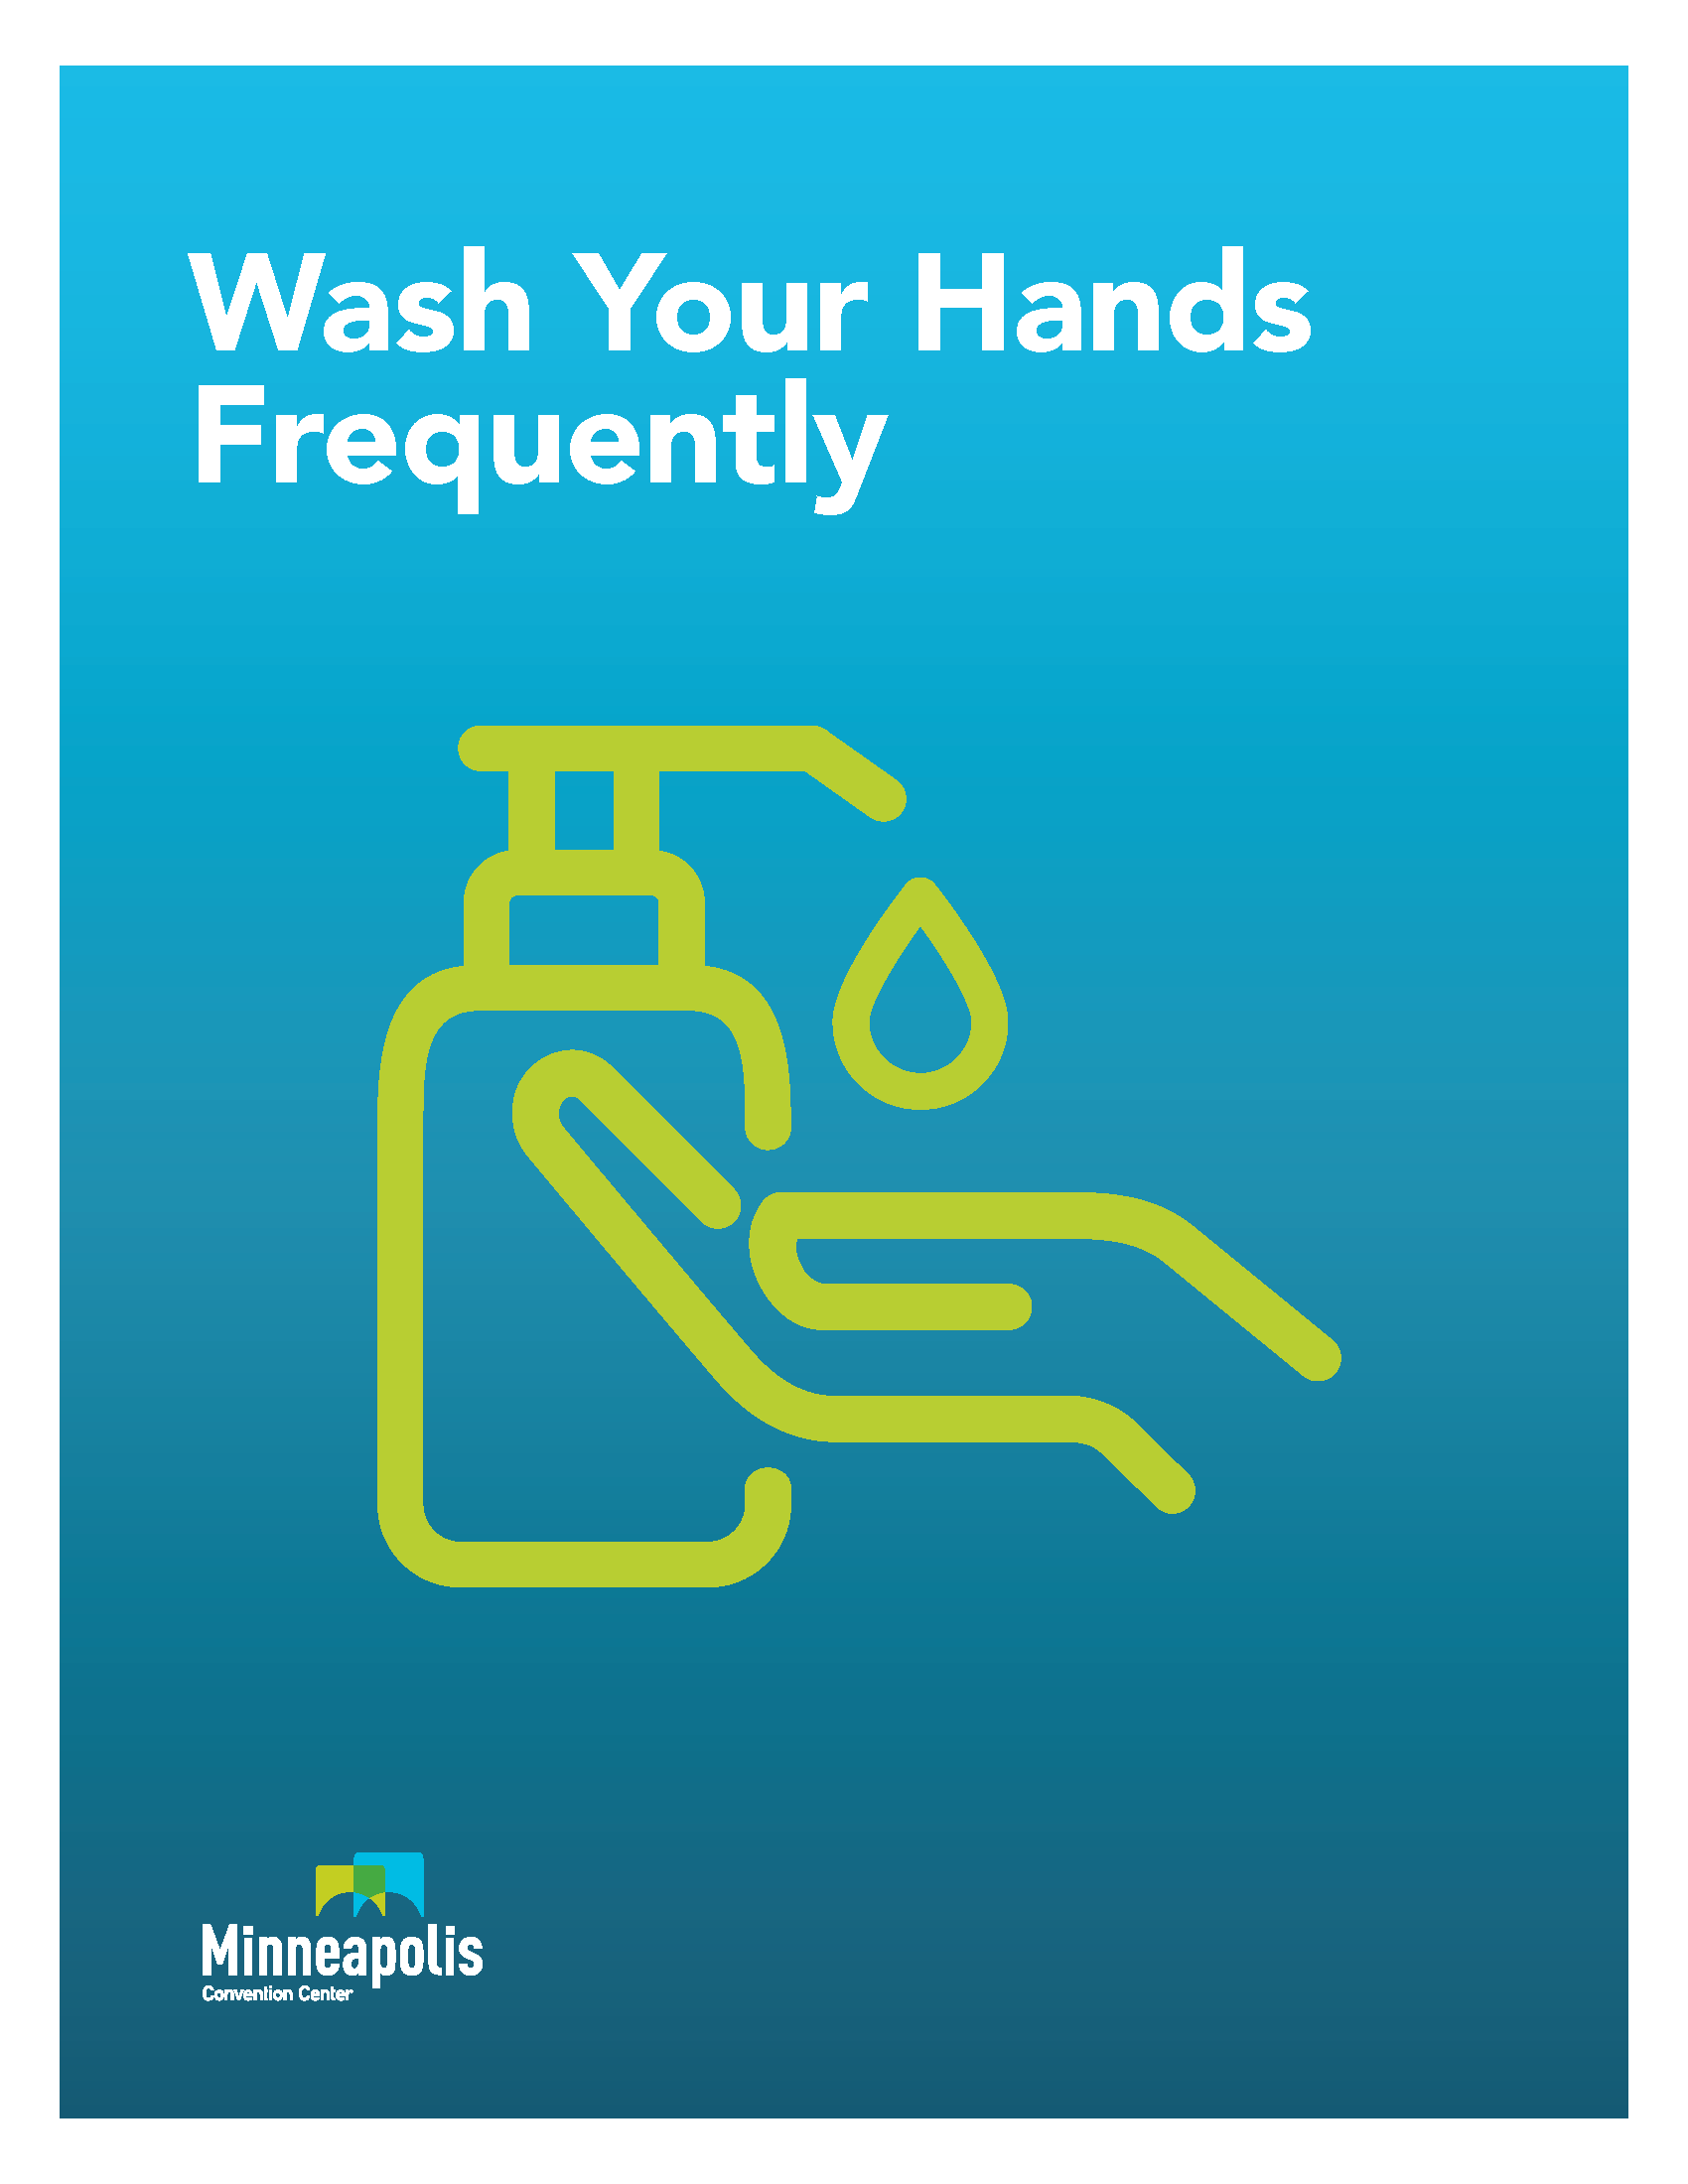 Safety-Reminder-Wash-Your-Hands-Frequently.png?mtime=20200817134416#asset:7604535